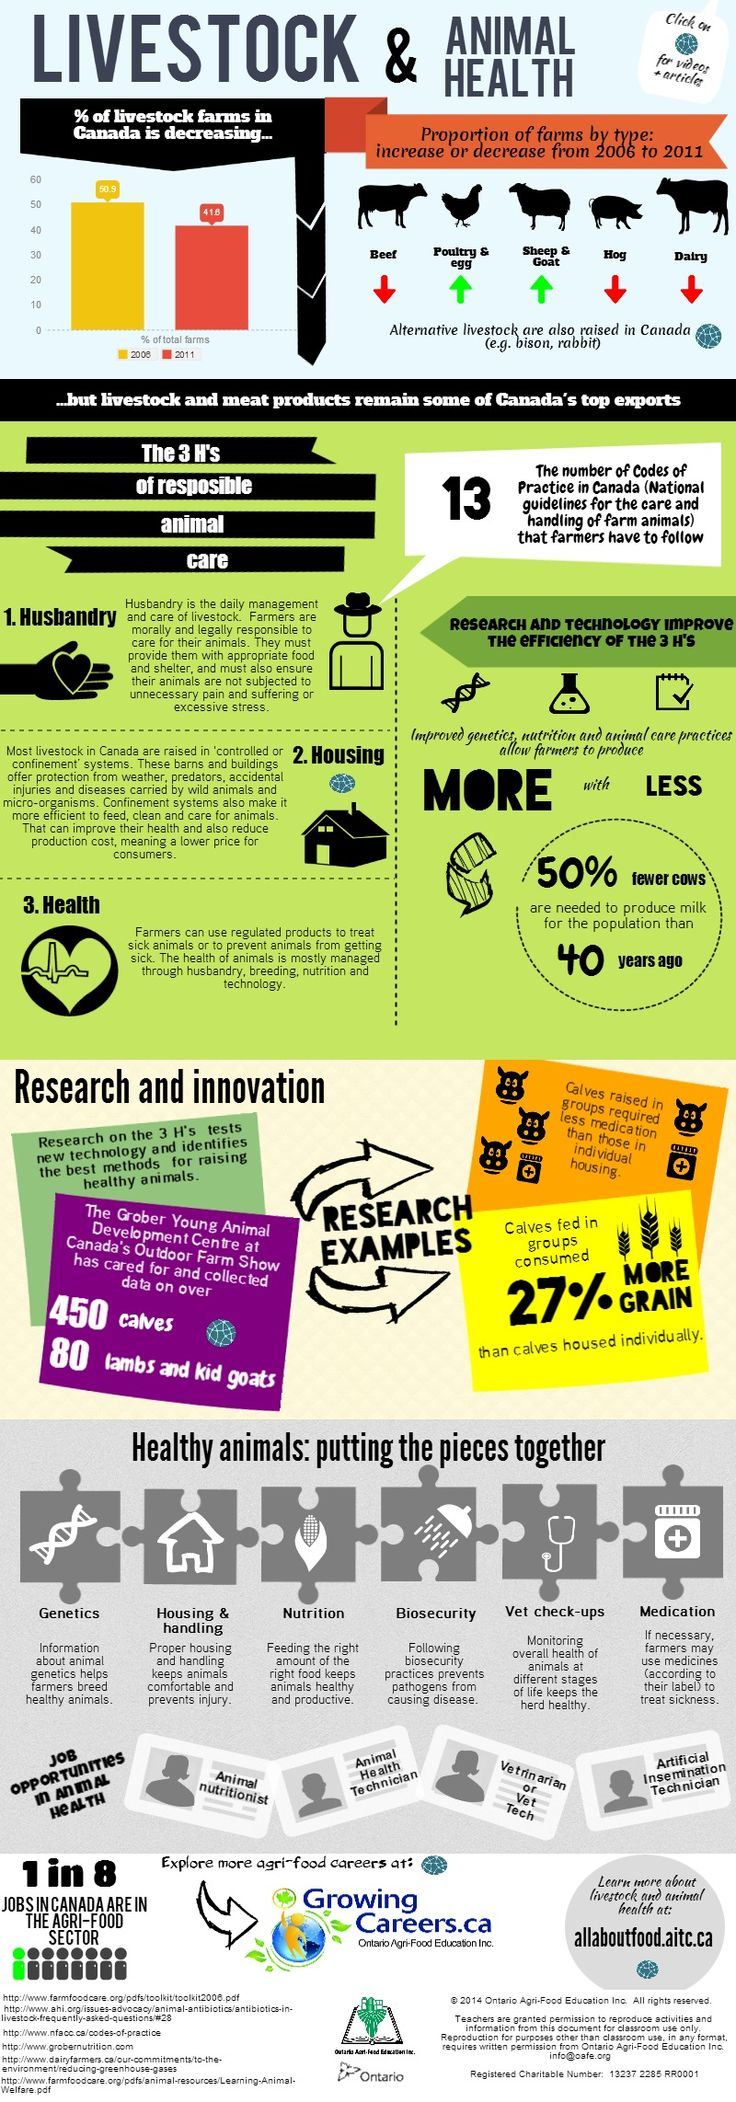 Livestock and Animal Health Infographic from Ontario Agri-Food Education Inc.